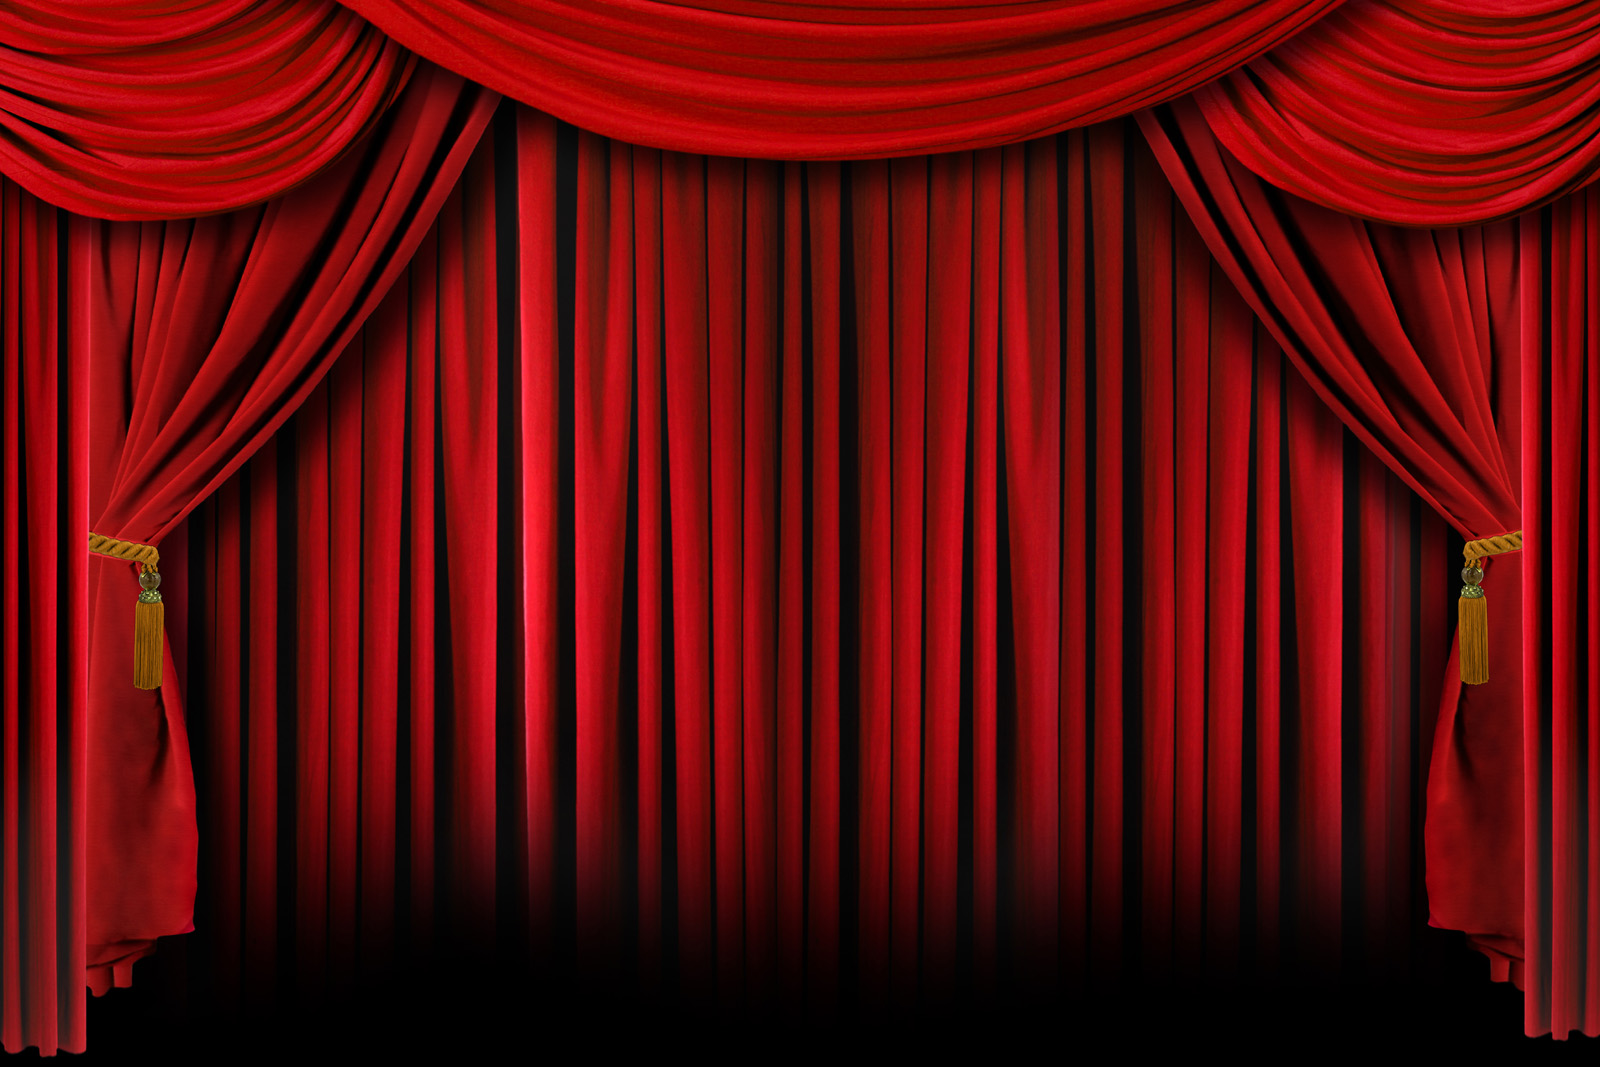 Movie Theater Curtains Wallpaper (7) Movie Theater Background ...